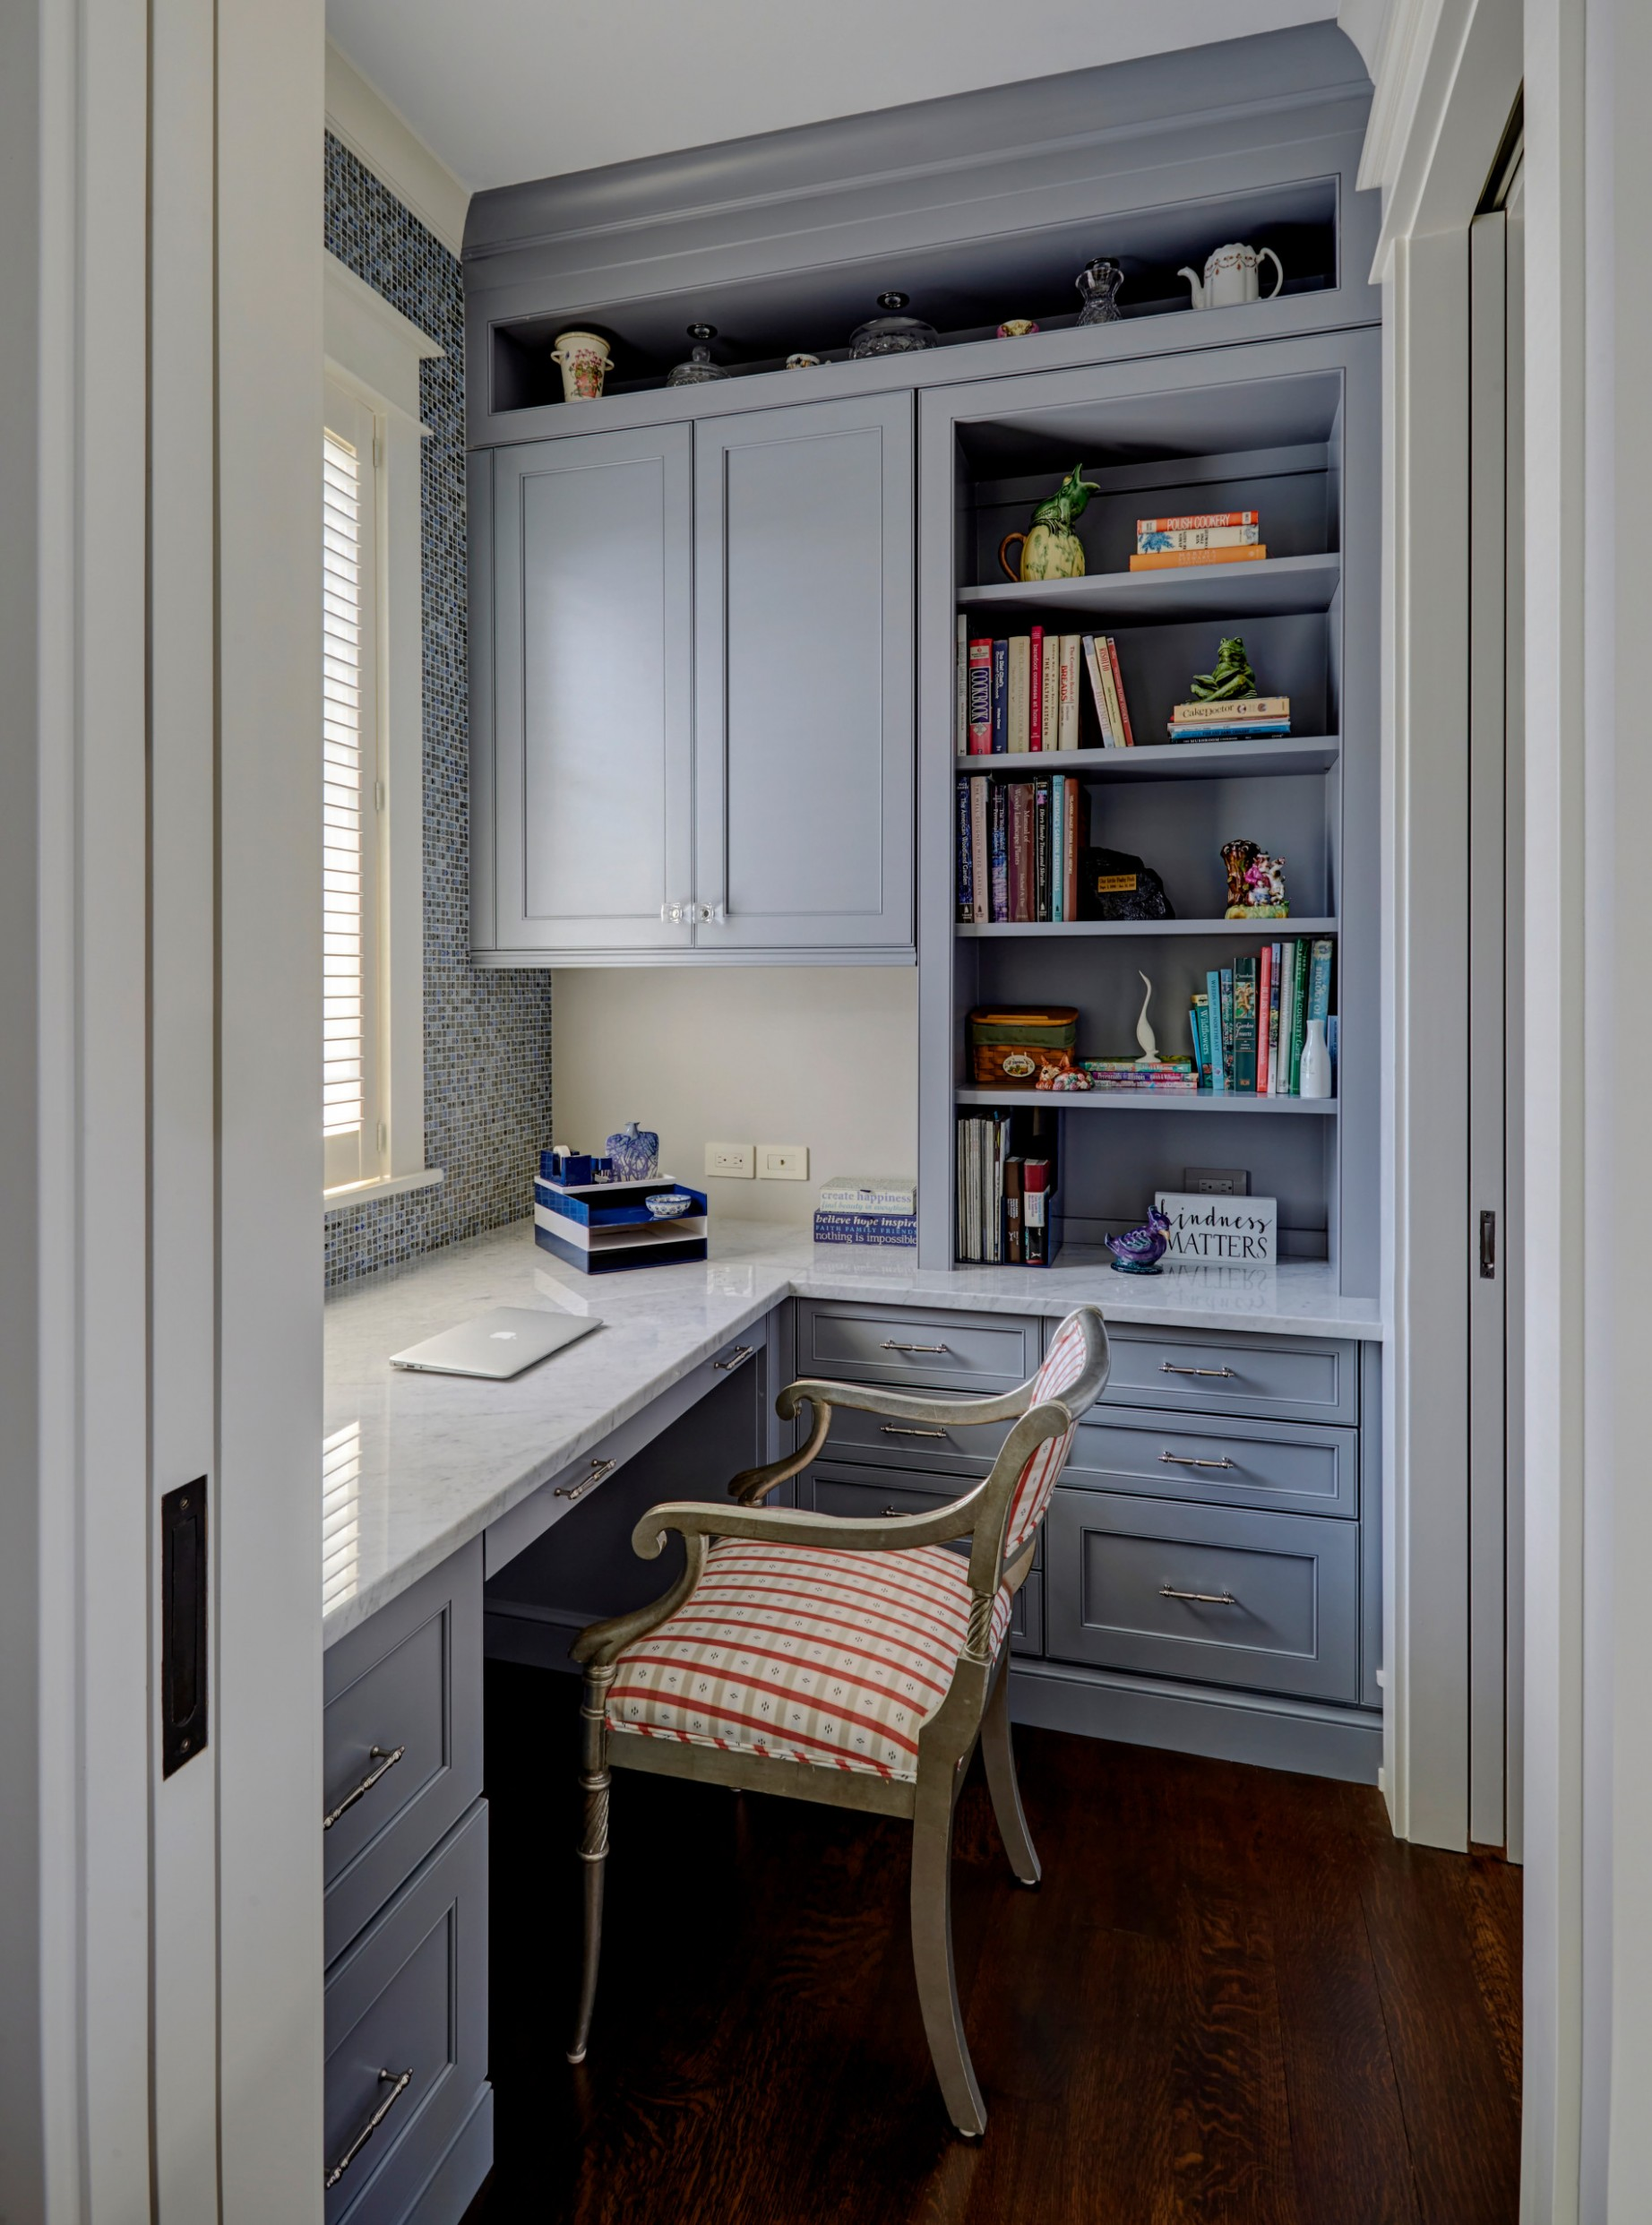 12 Beautiful Small Home Office Pictures & Ideas October 12  Houzz - Home Office Kitchen Design Ideas